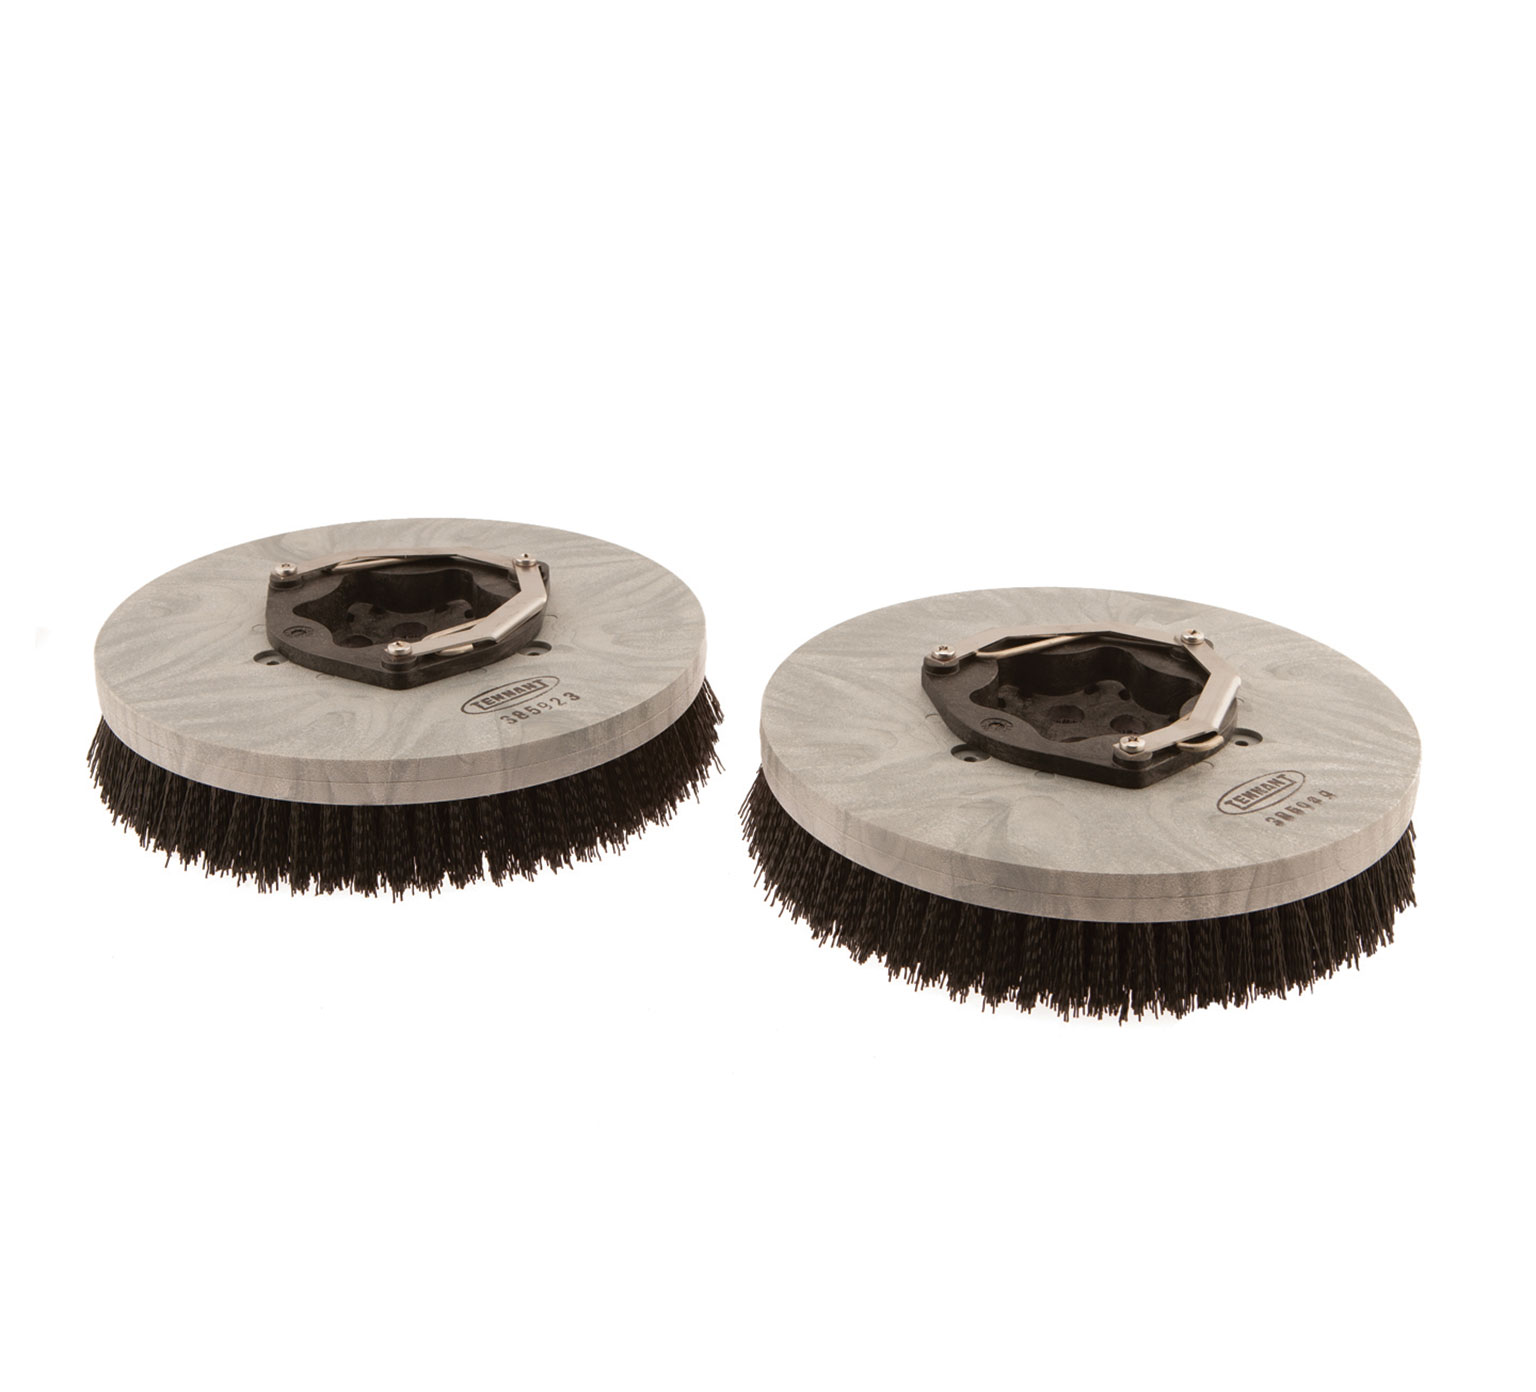 385926 13 in / 330 mm Polypropylene Disk Scrub Brush alt 1